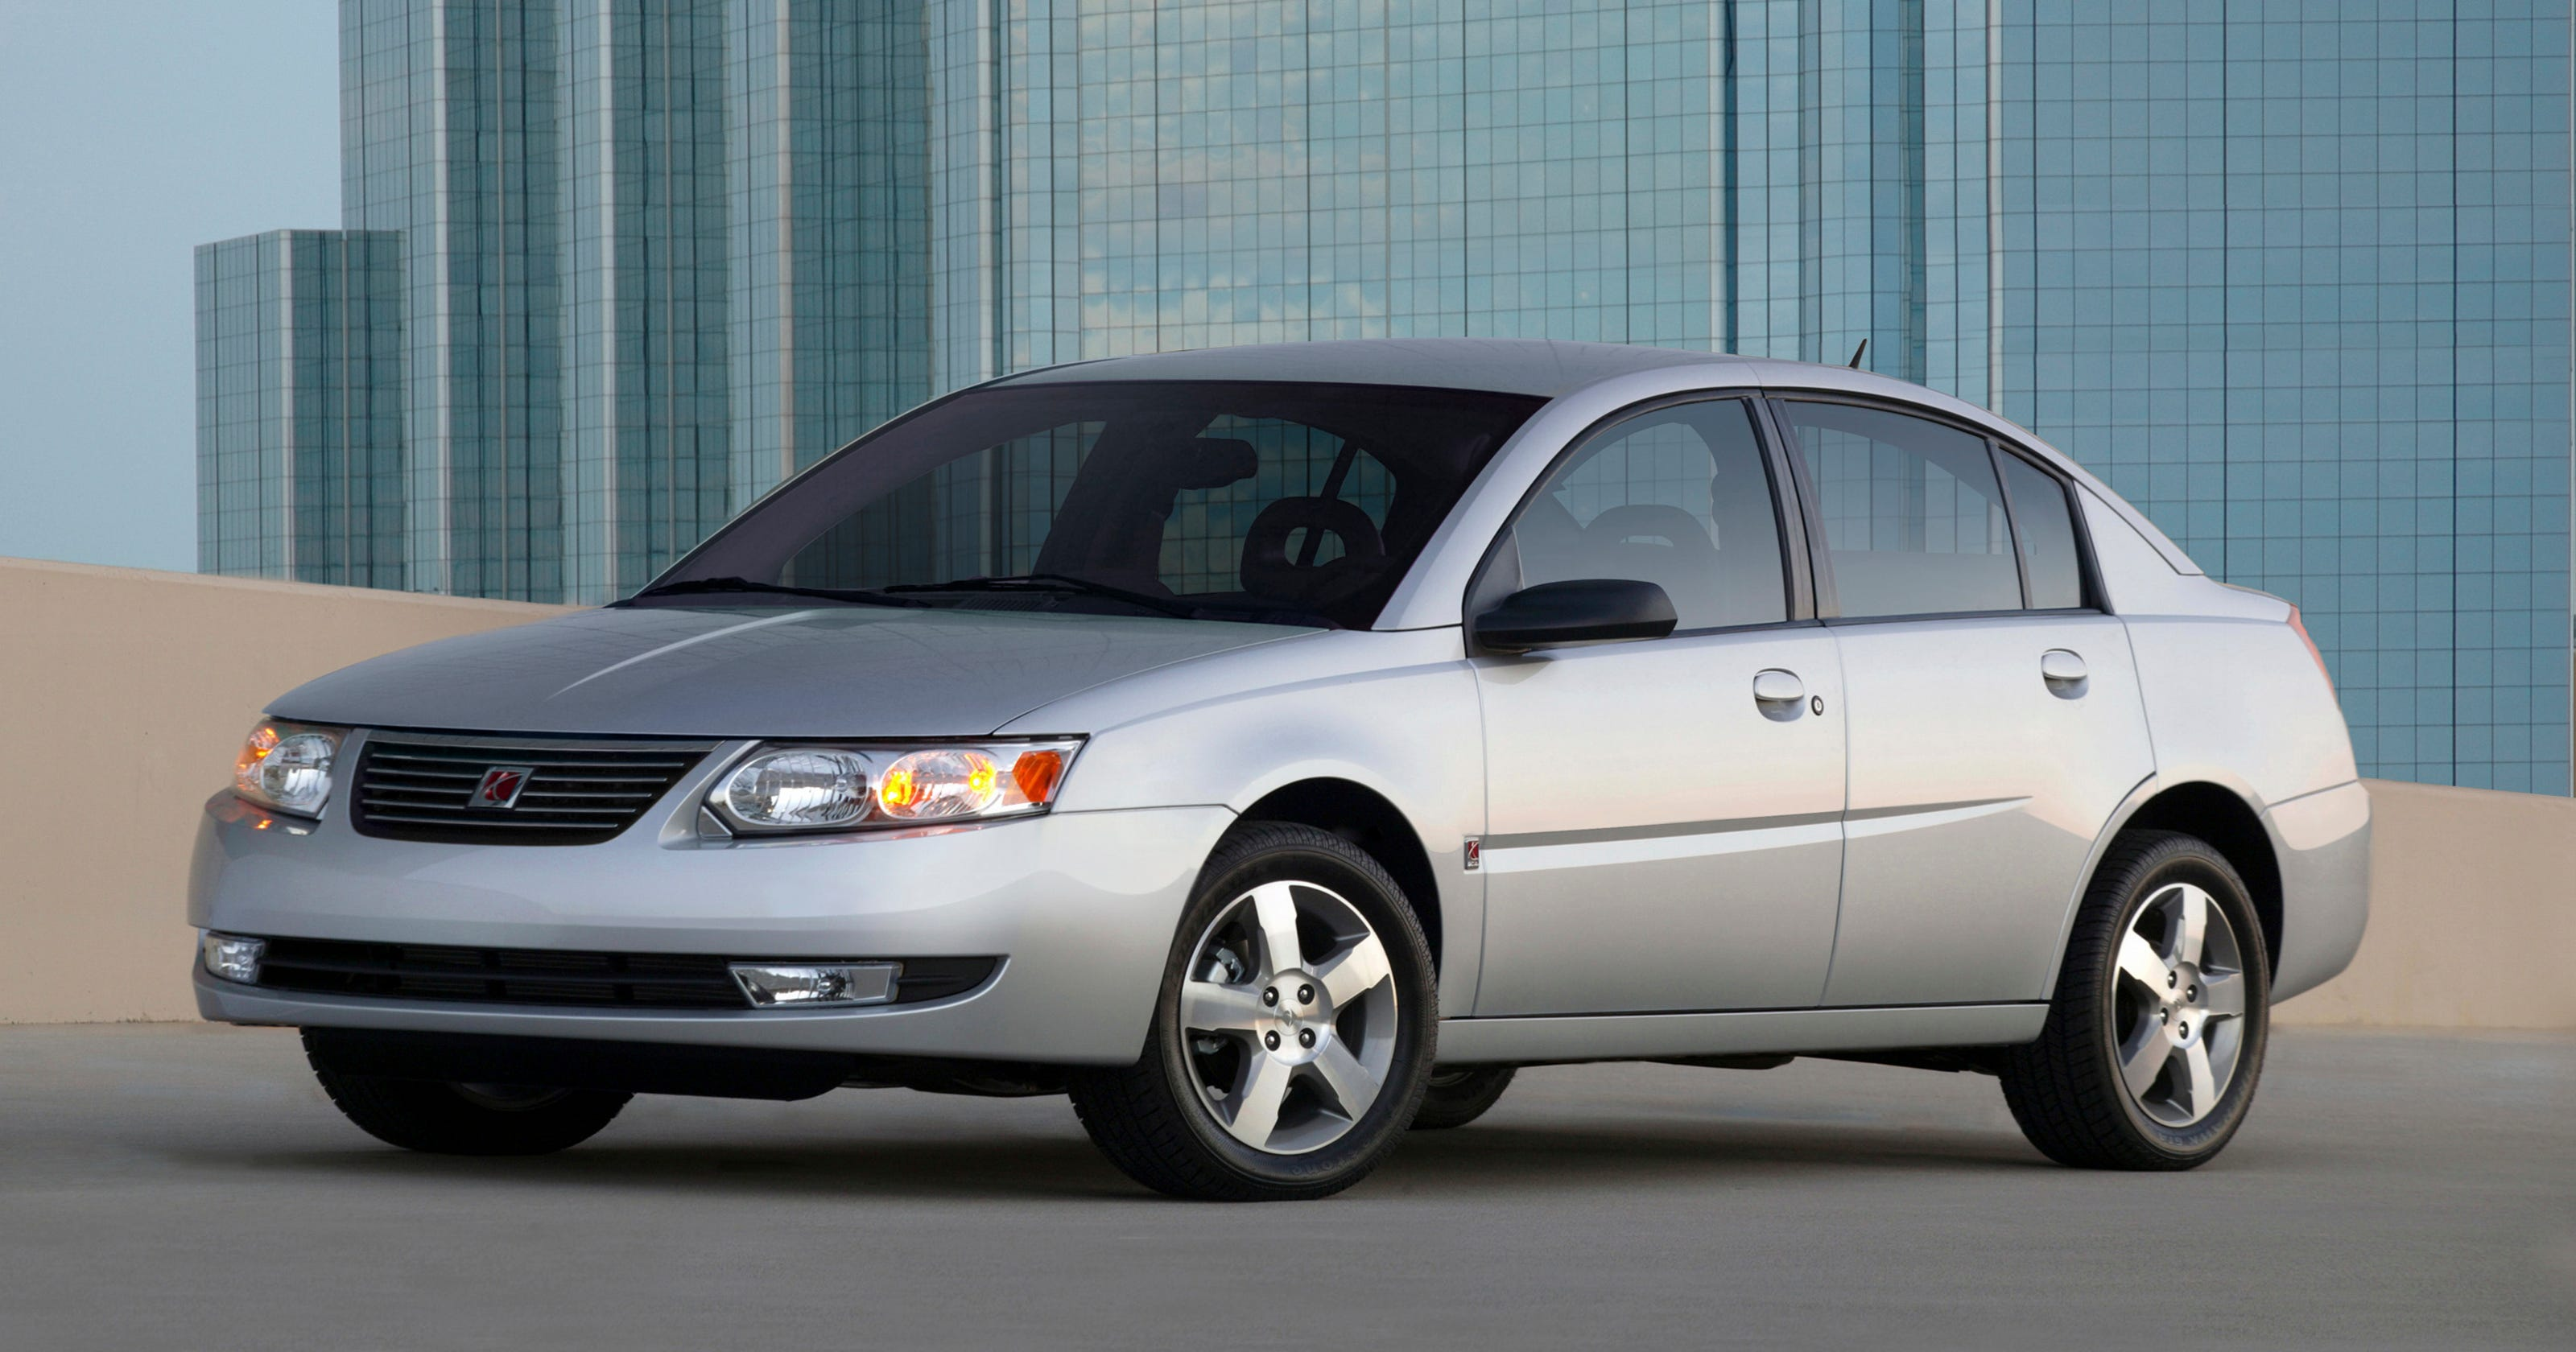 Other GM cars have recalled Cobalt steering